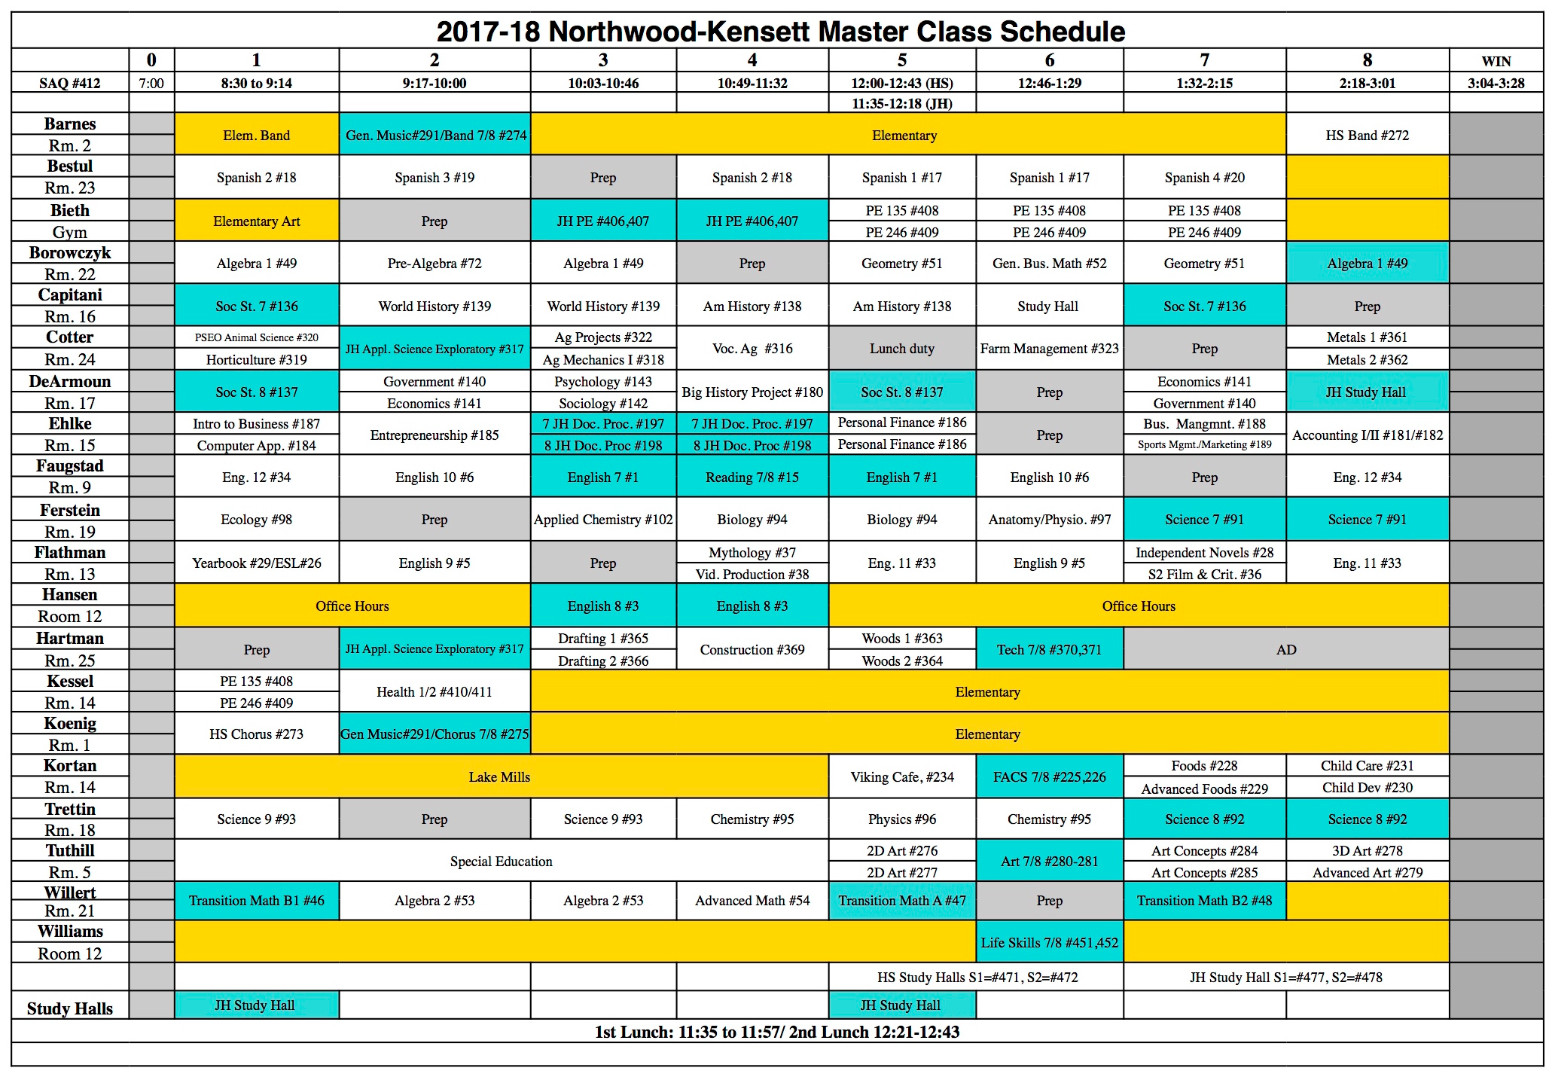 college school schedule template - northwood kensett 2017 2018 high school class schedule